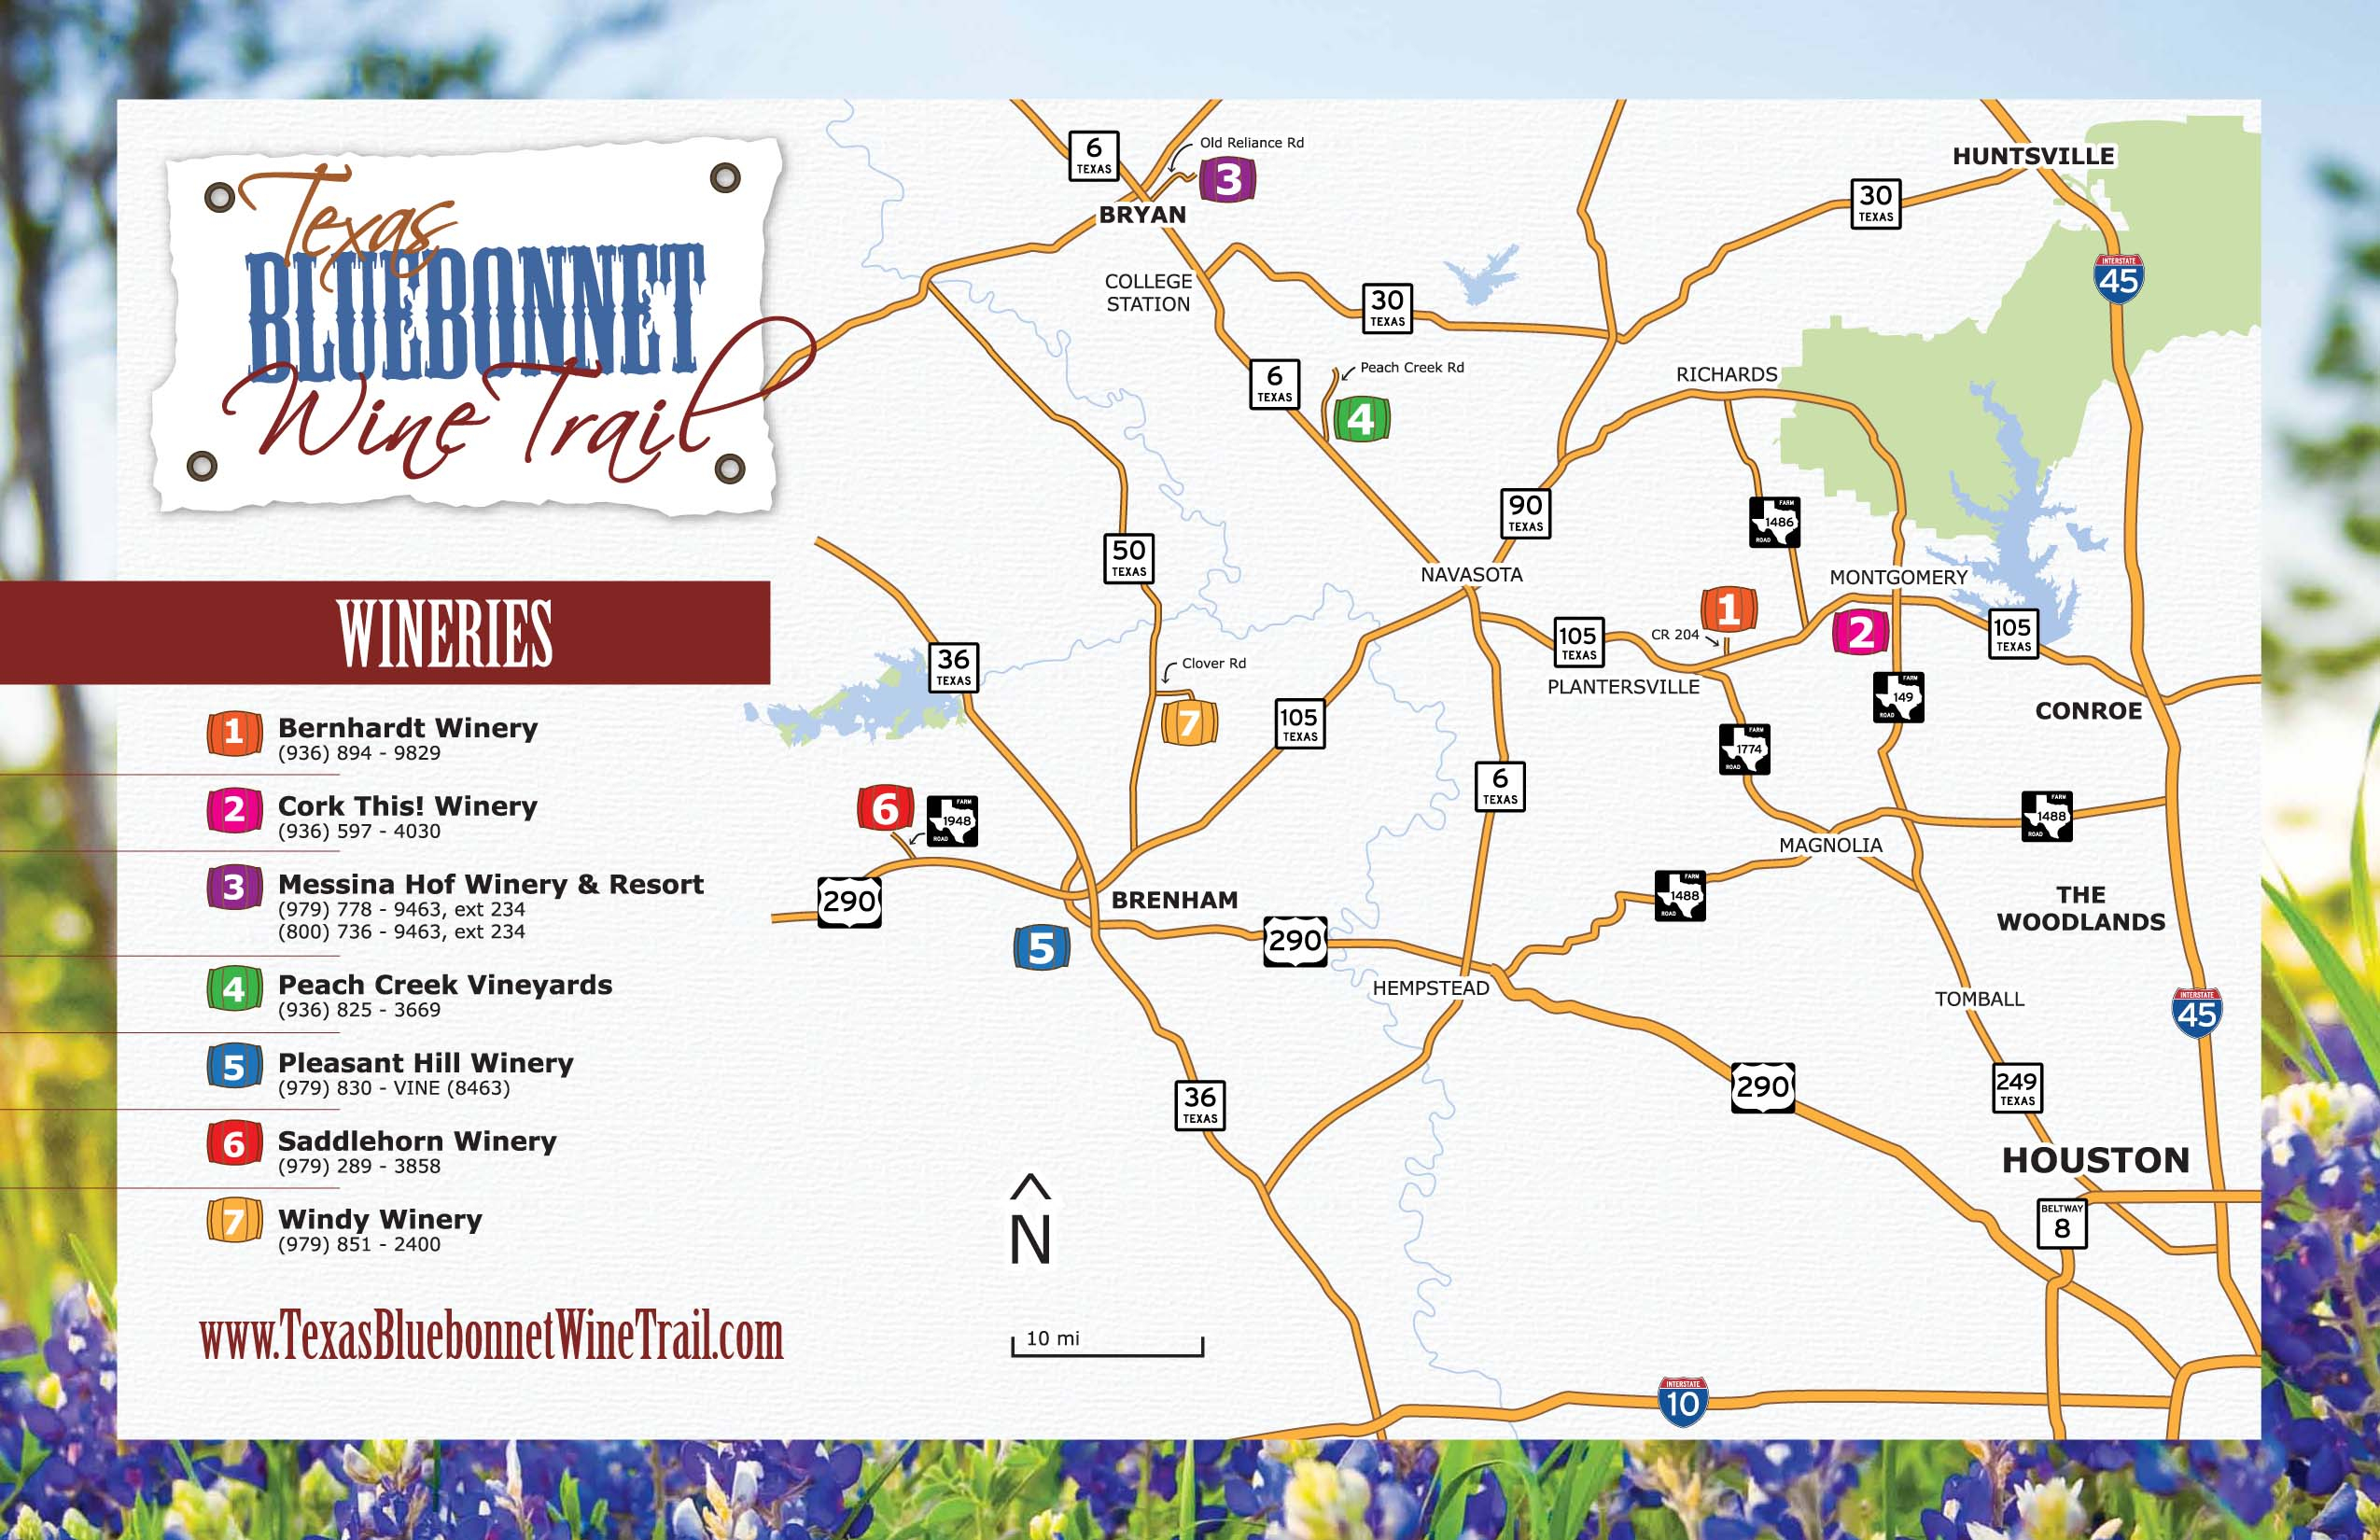 Texas Winery Map | Business Ideas 2013 - North Texas Wine Trail Map